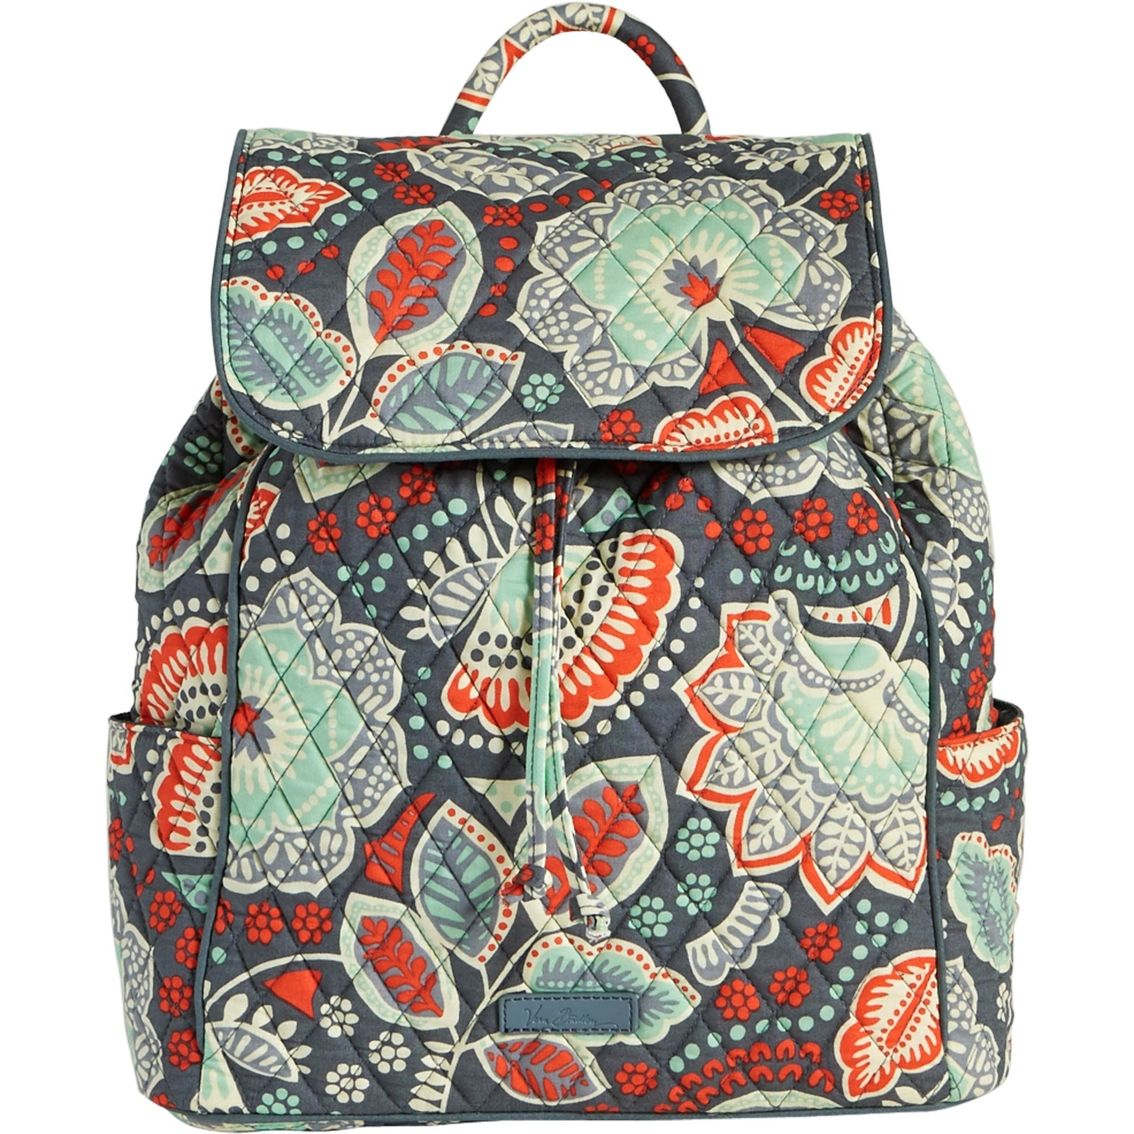 86ca84f2b6 A backpack with a drawstring to carry all of your needs.